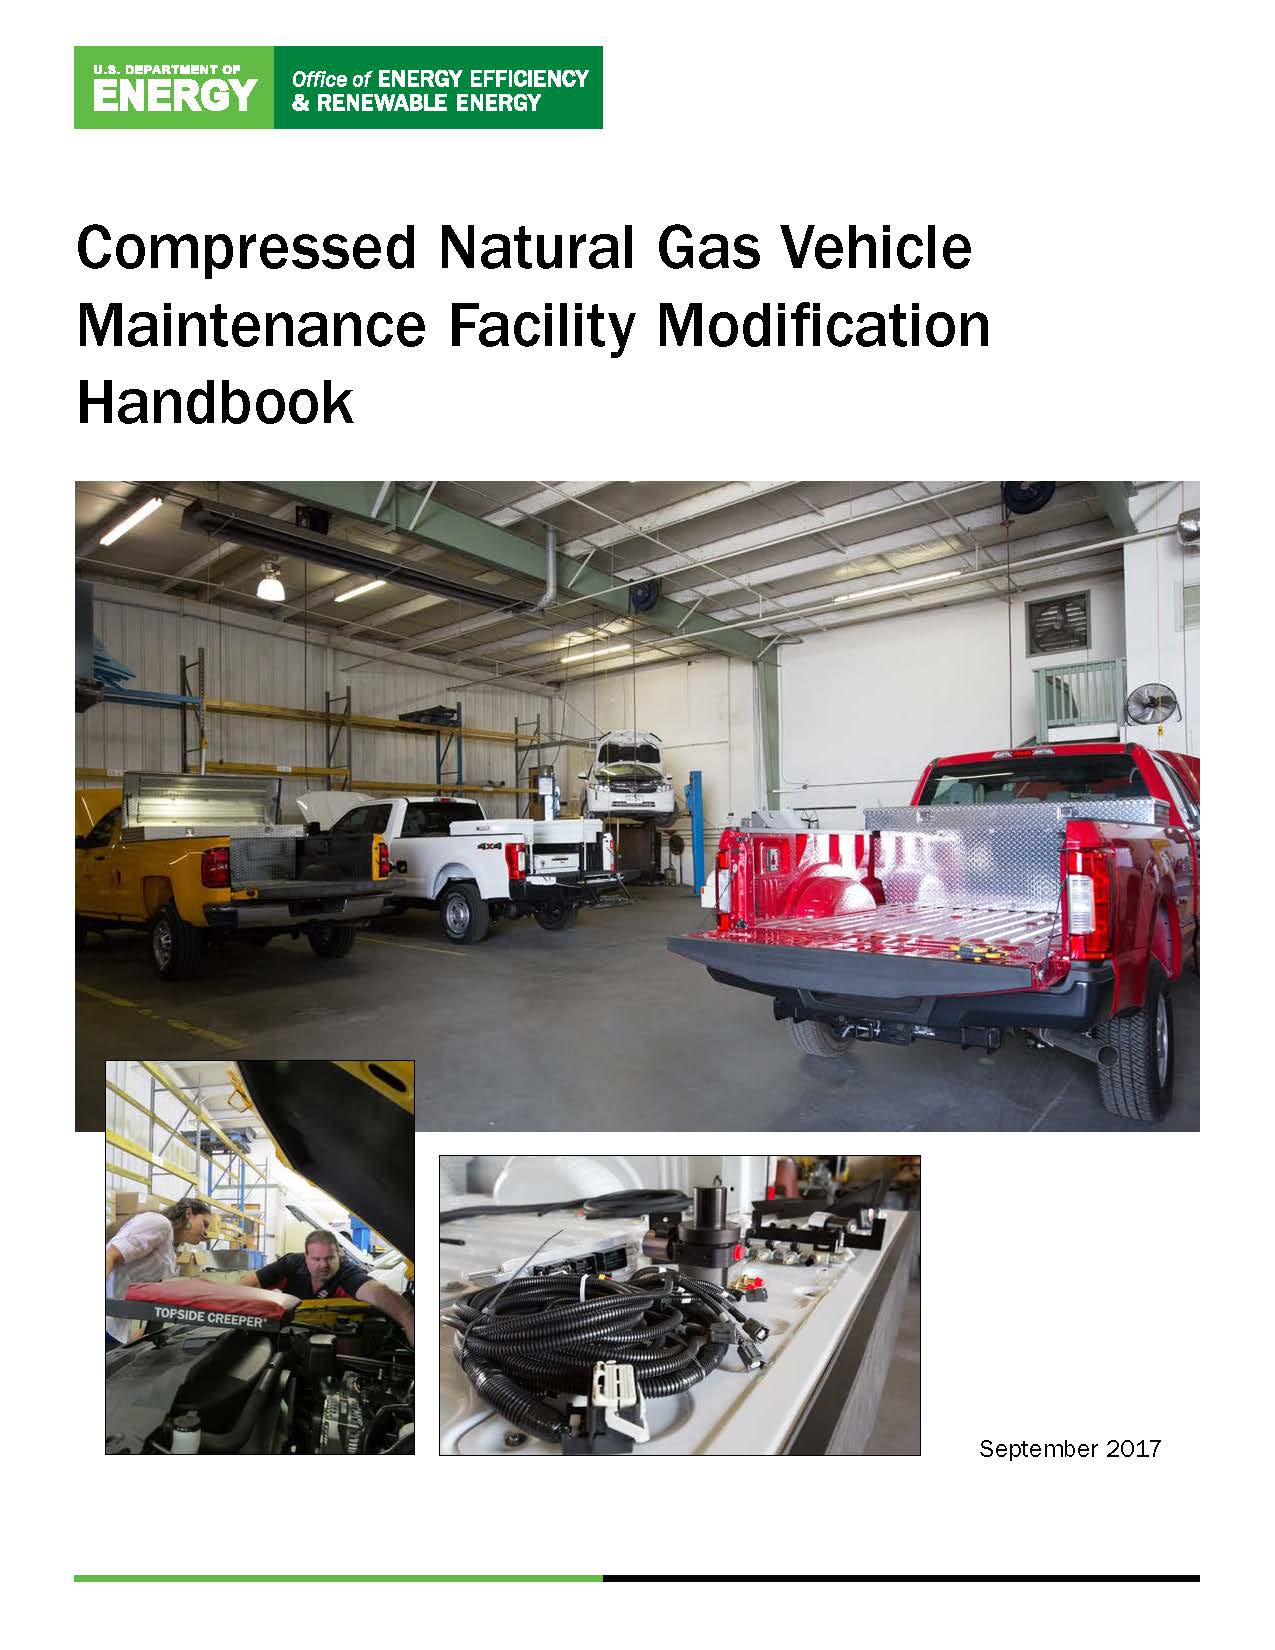 Photo of the cover of the Compressed Natural Gas Vehicle Maintenance Facility Modifications Handbook